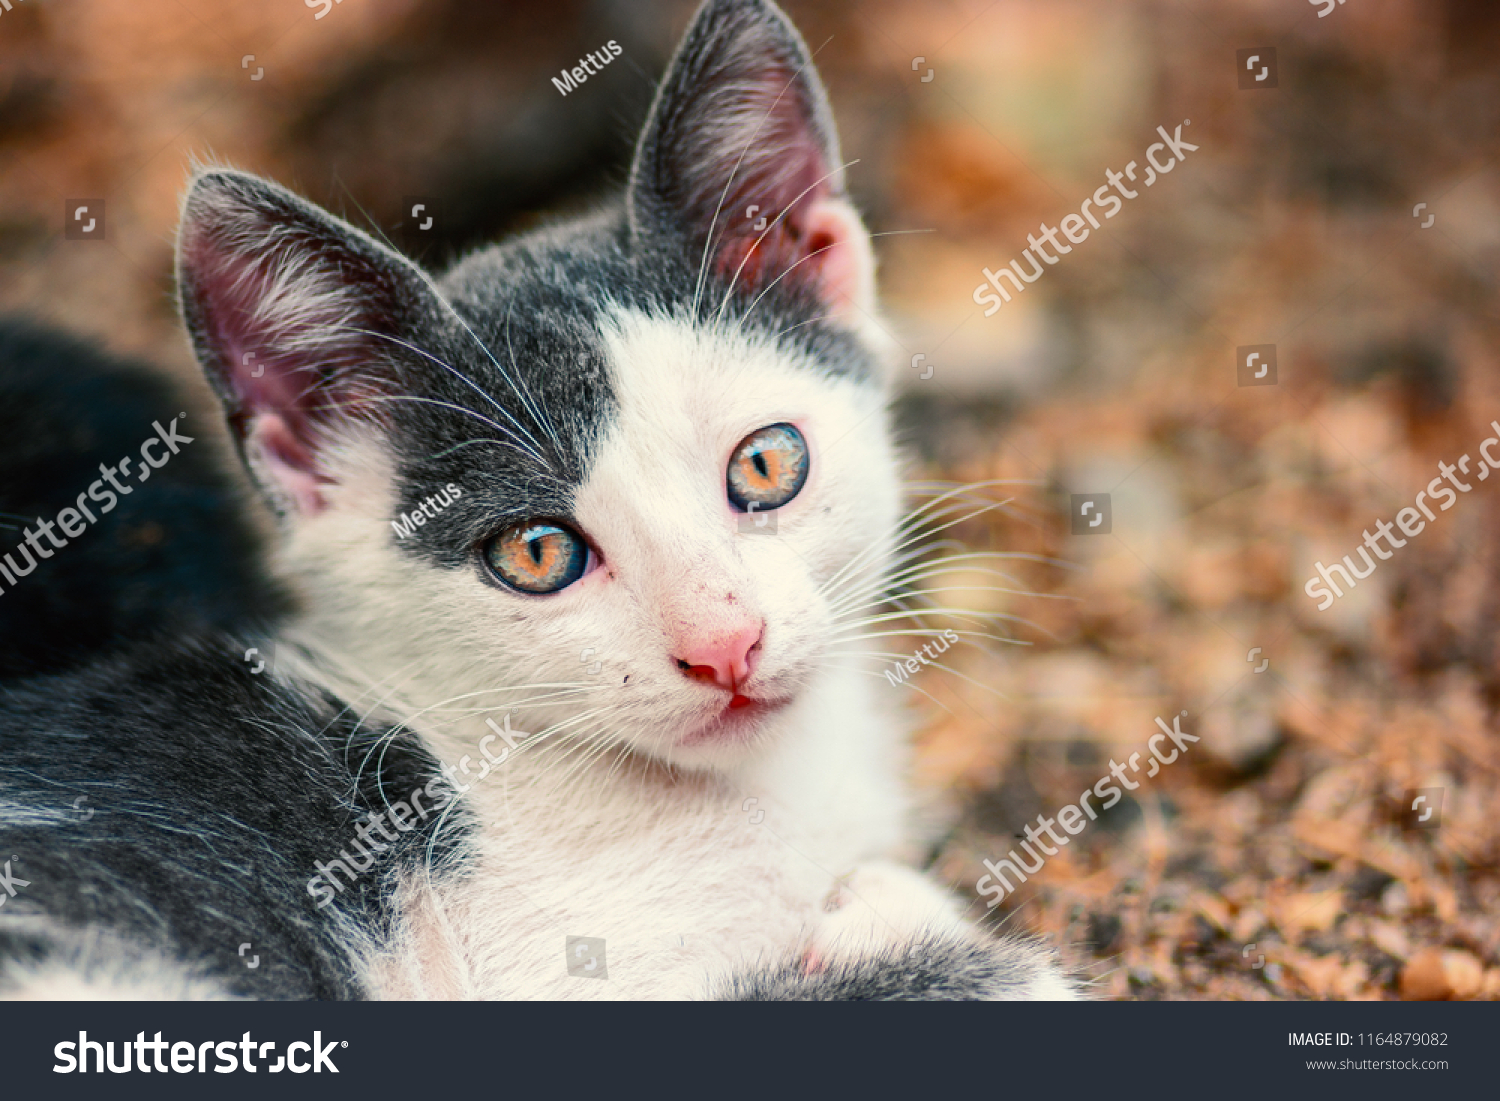 stock-photo-cyte-kitty-face-looking-at-c